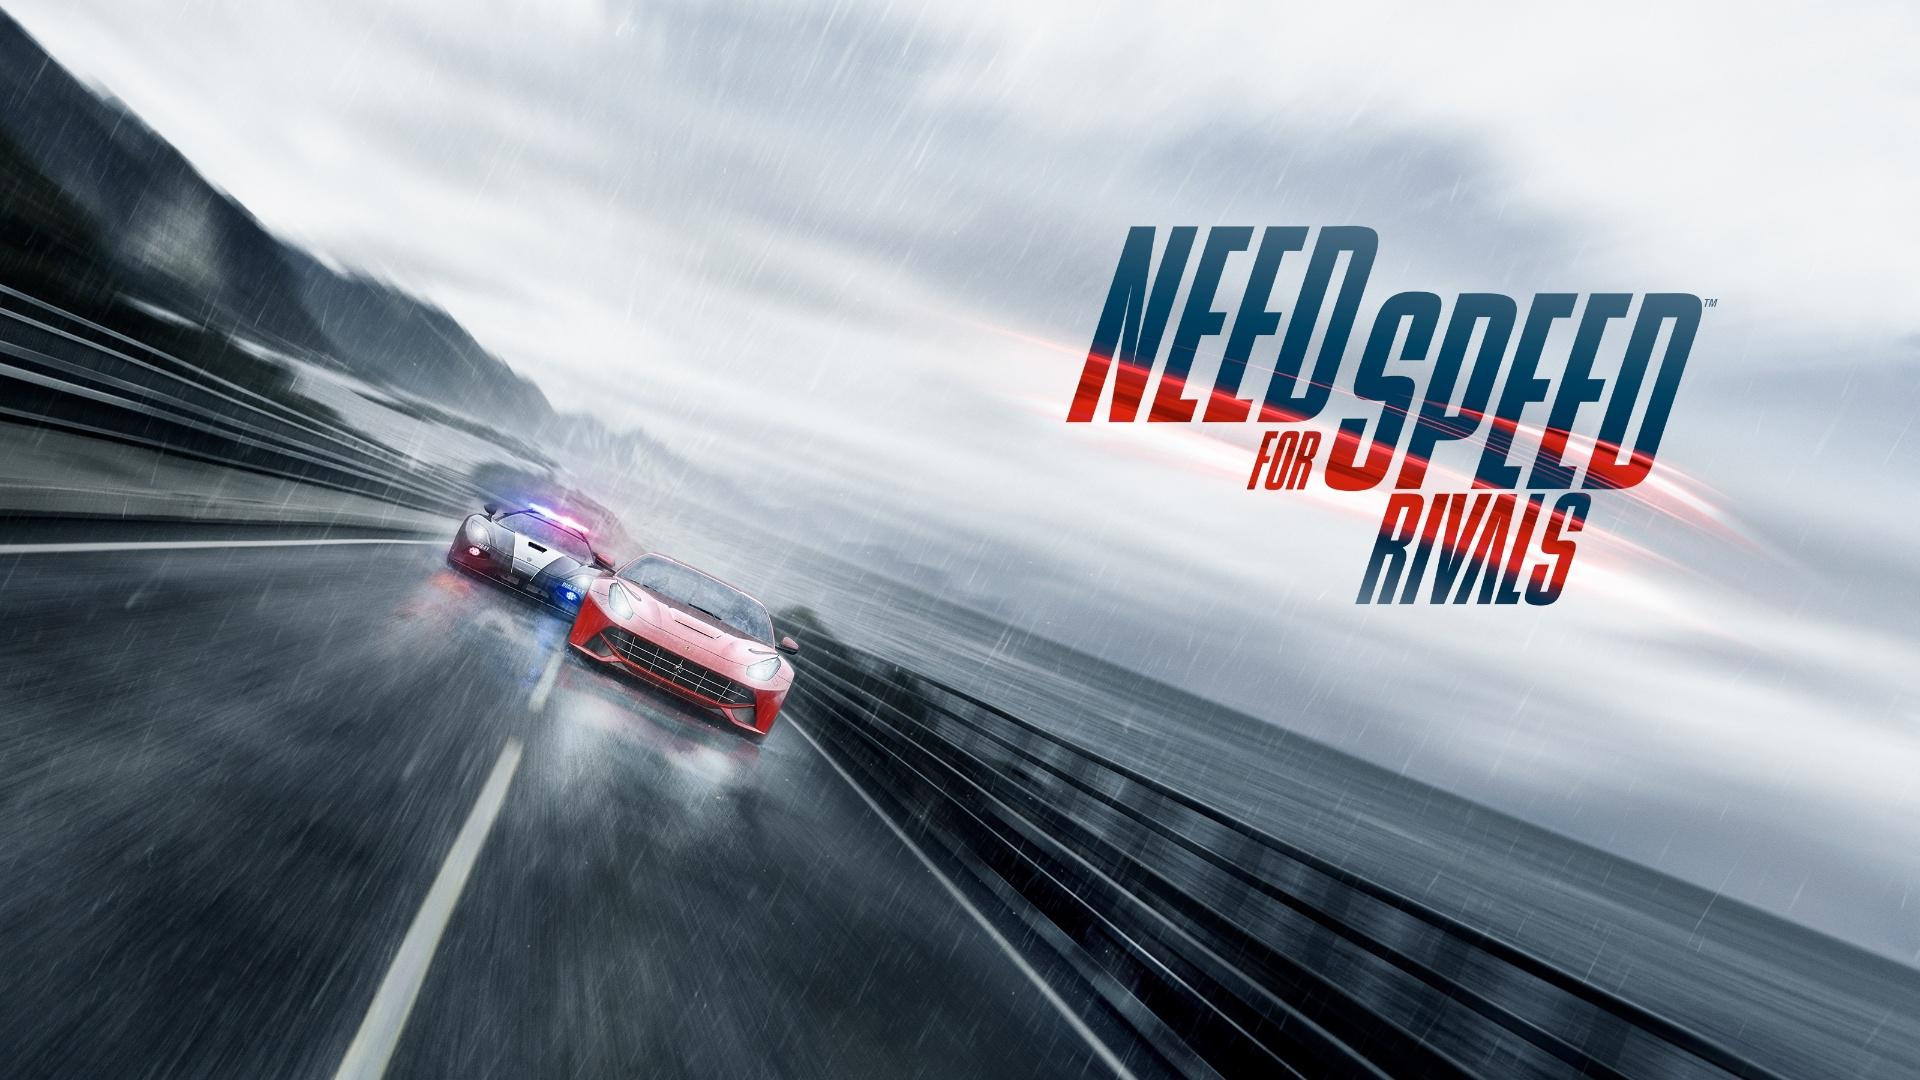 need for speed rivals complete edition parks up on ps4 in october push square. Black Bedroom Furniture Sets. Home Design Ideas